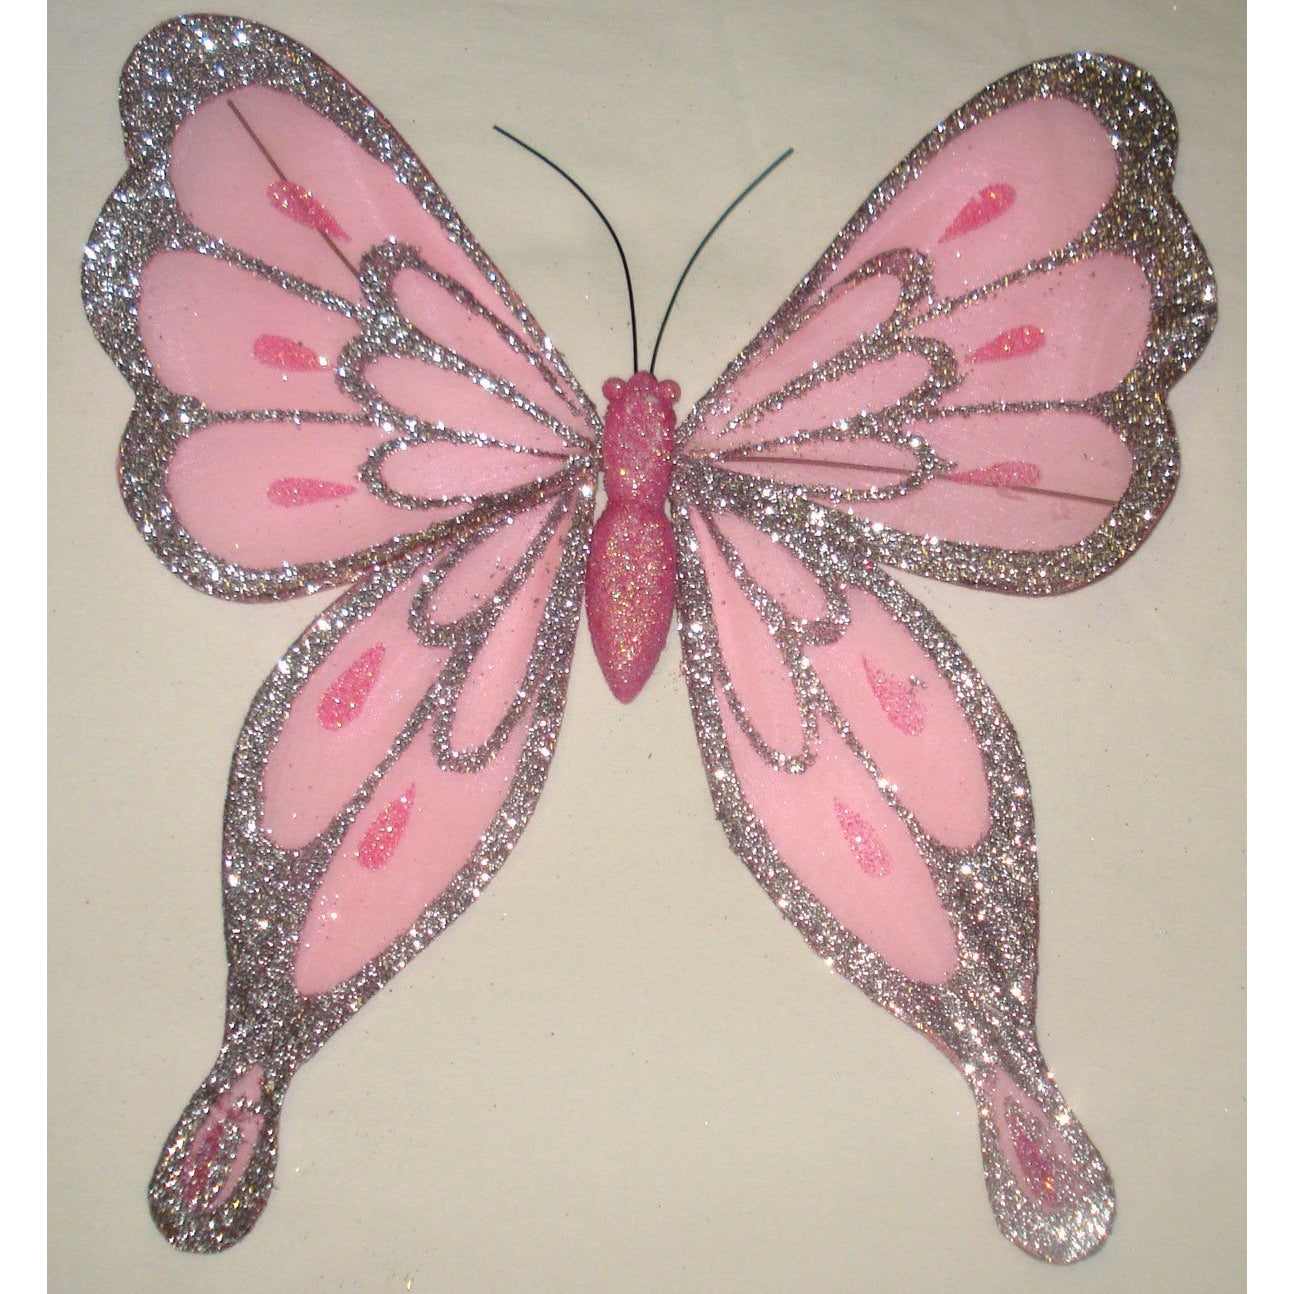 Pink Butterfly  wings decoration Ornament decoration DIY craft project supplies